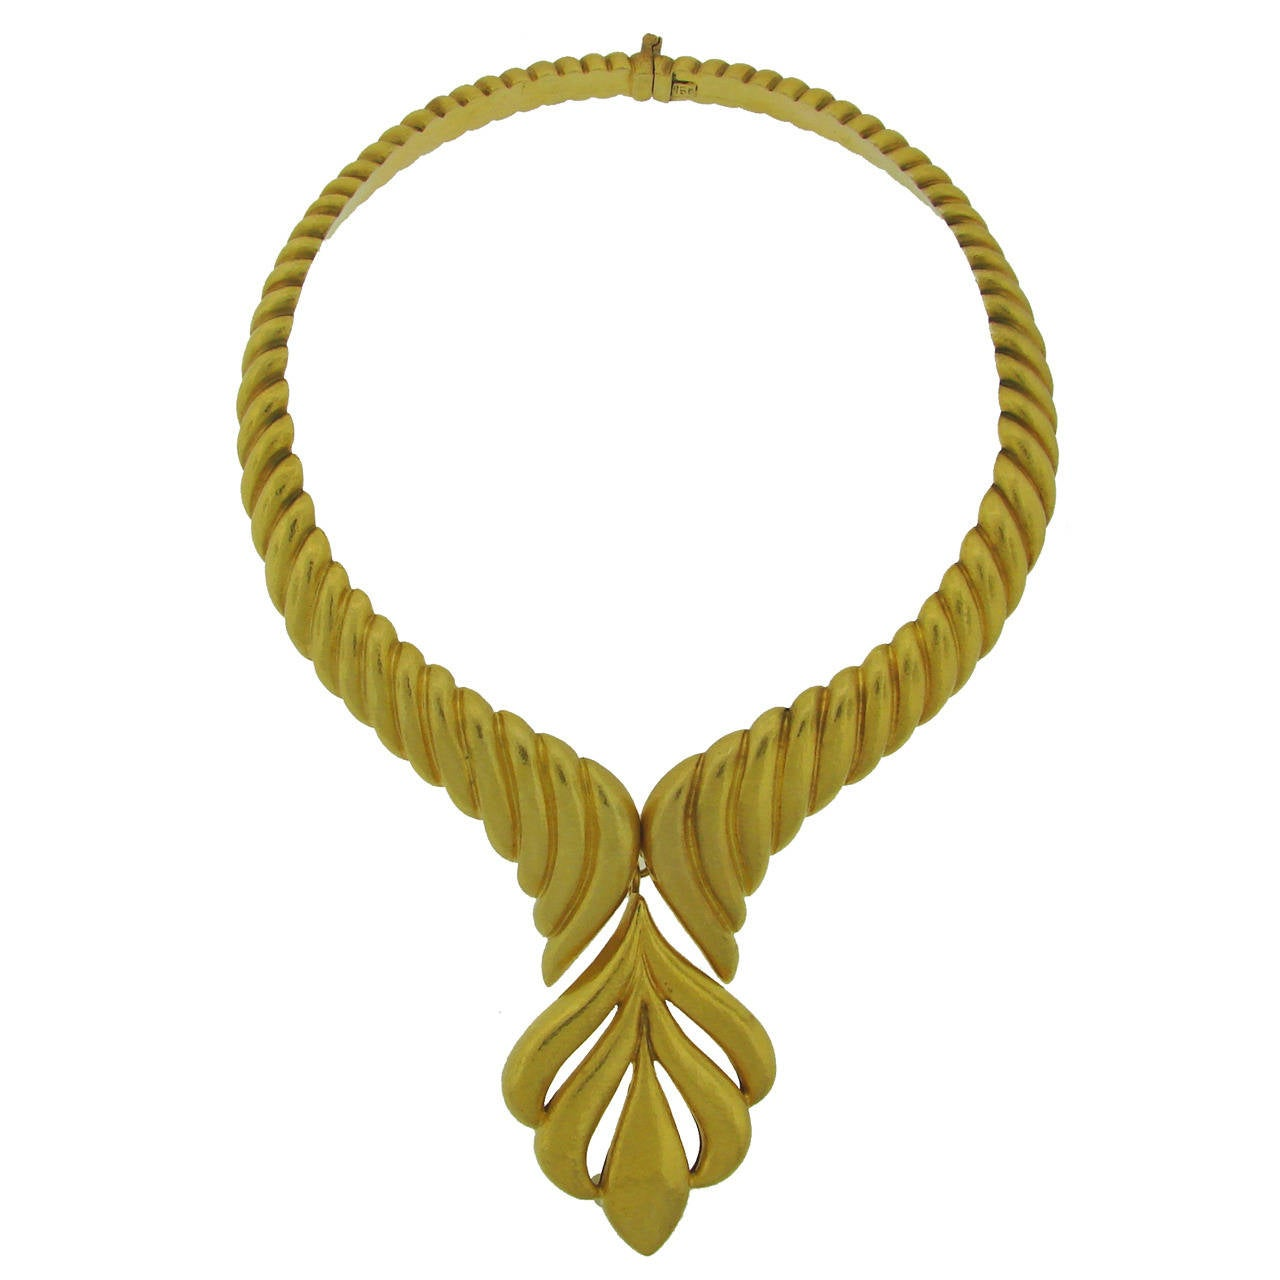 Zolotas Yellow Gold Necklace